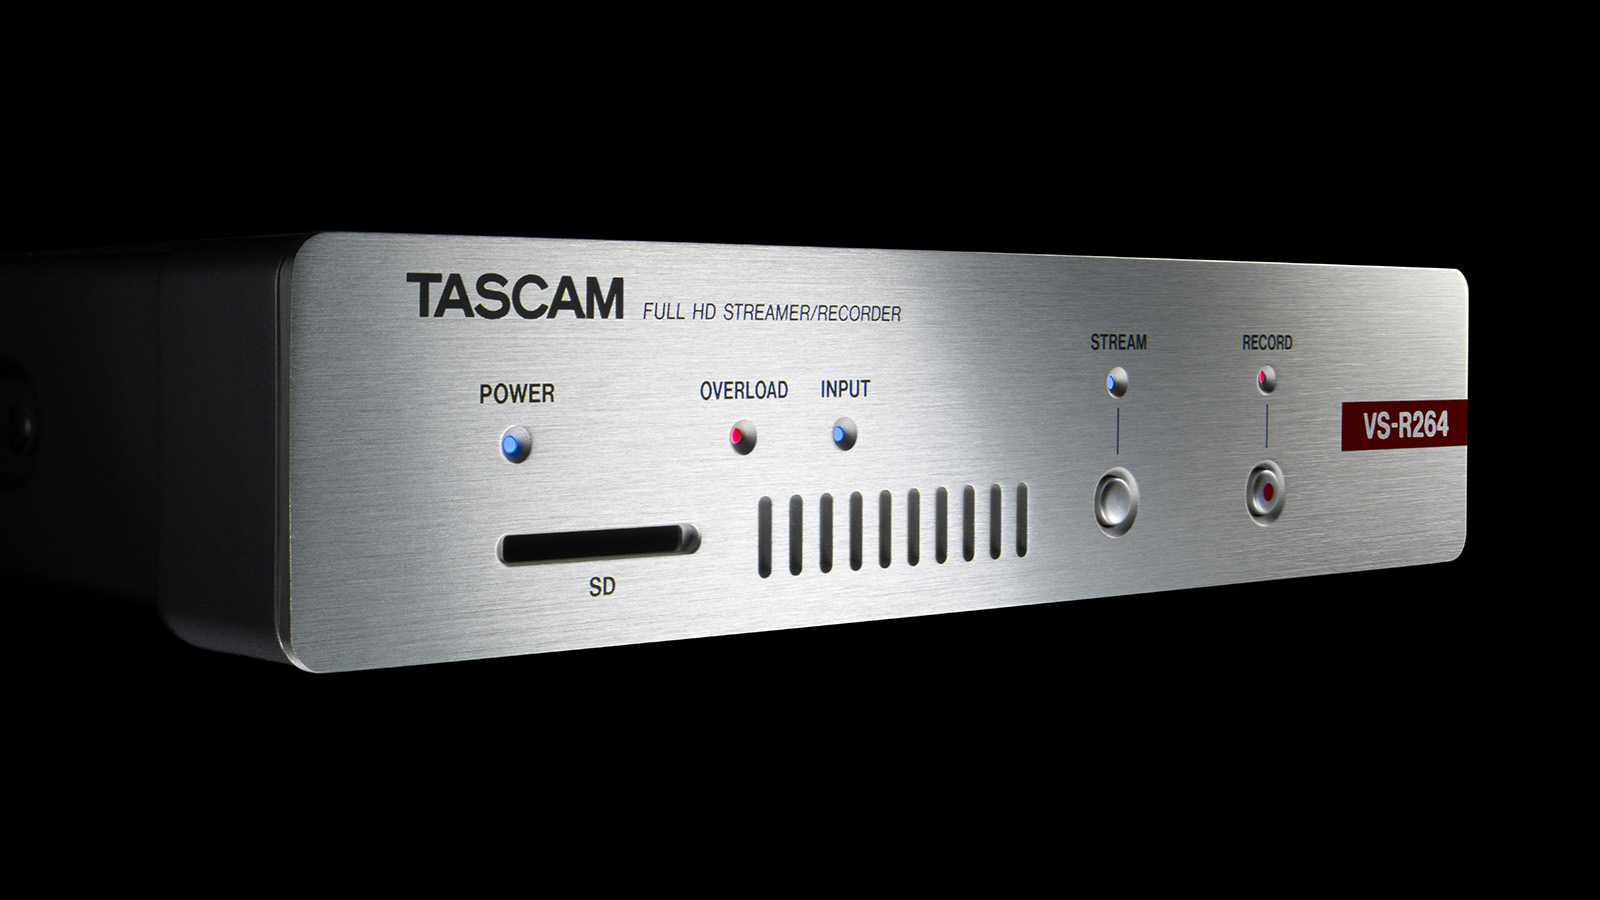 Professional Grade Streaming Made Easy with TASCAM's VS-R264 Video Encoder/Decoder